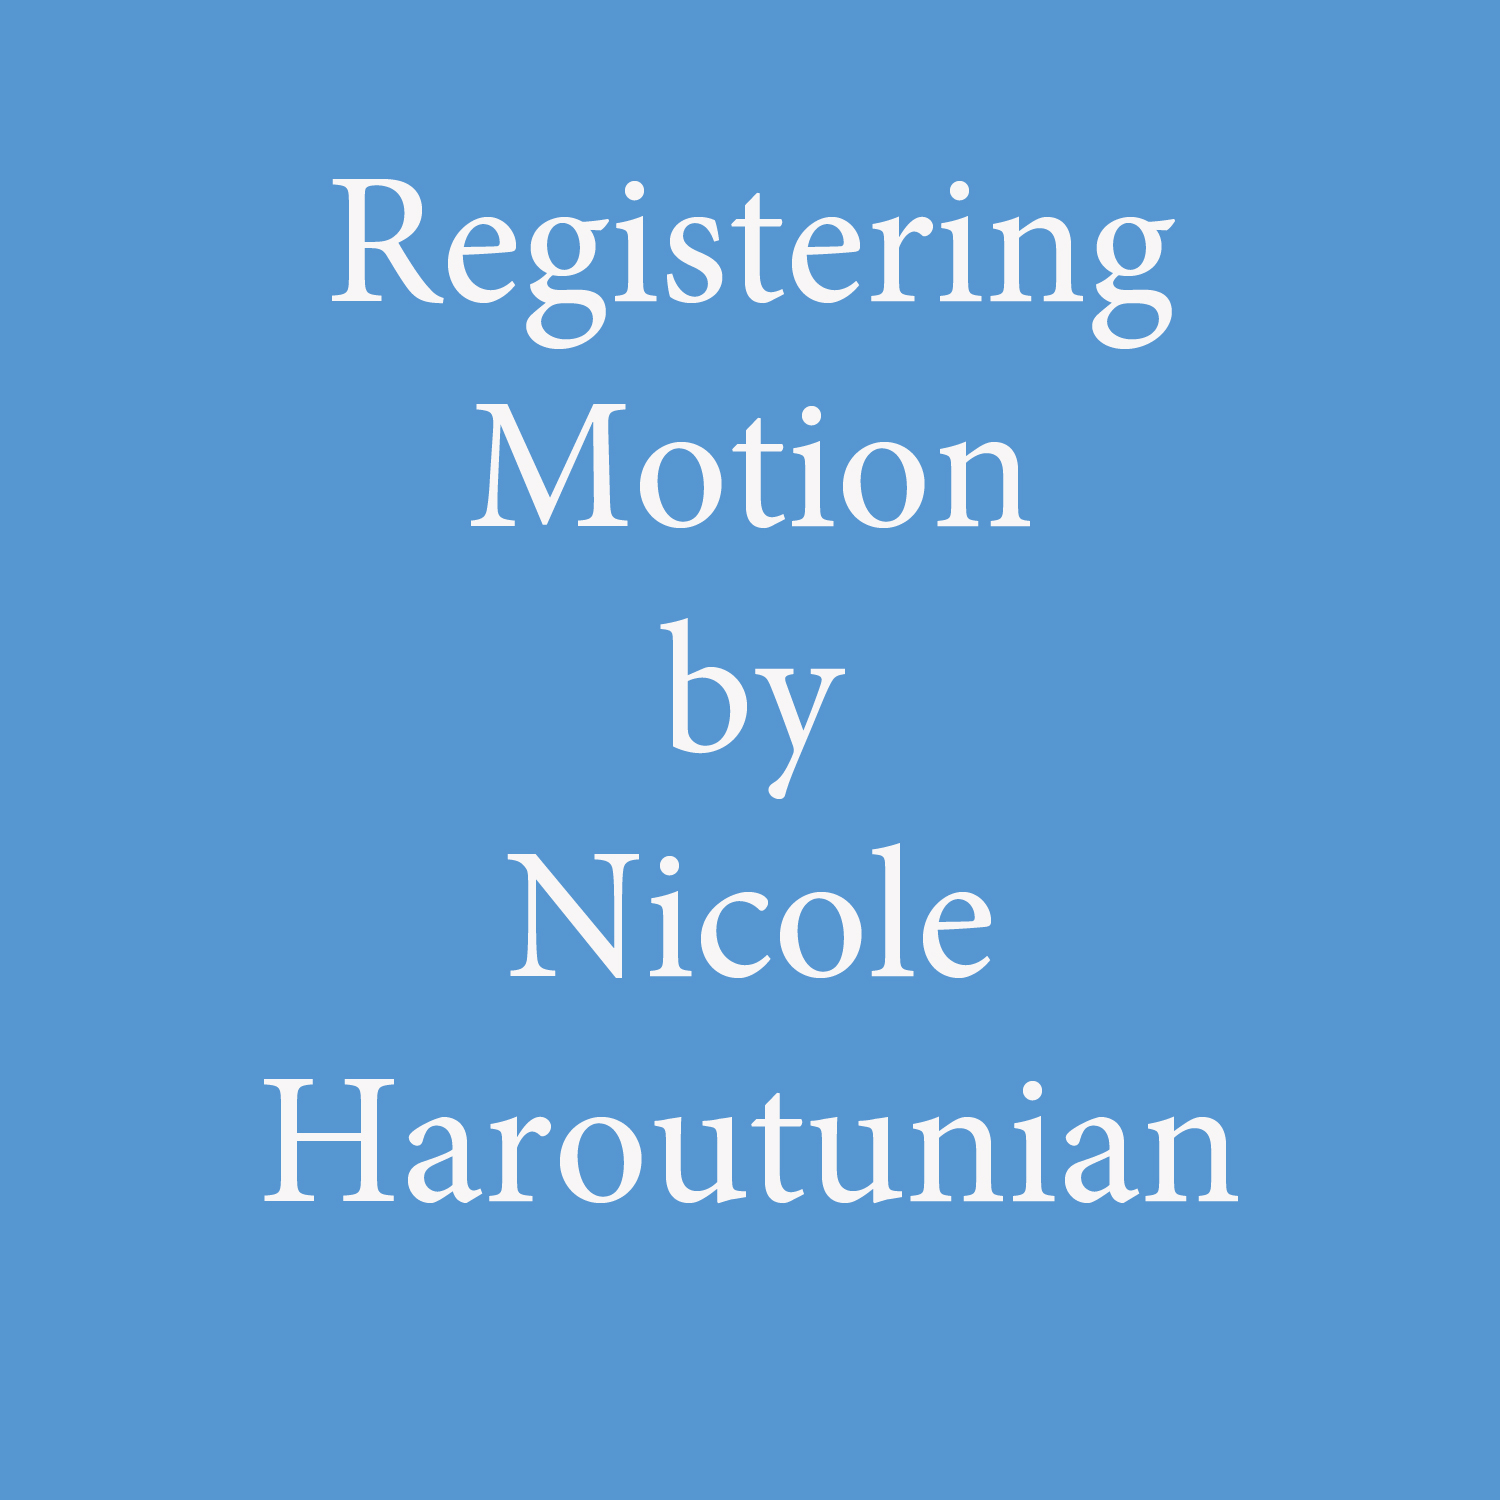 registering motion by nicole haroutunian.jpg